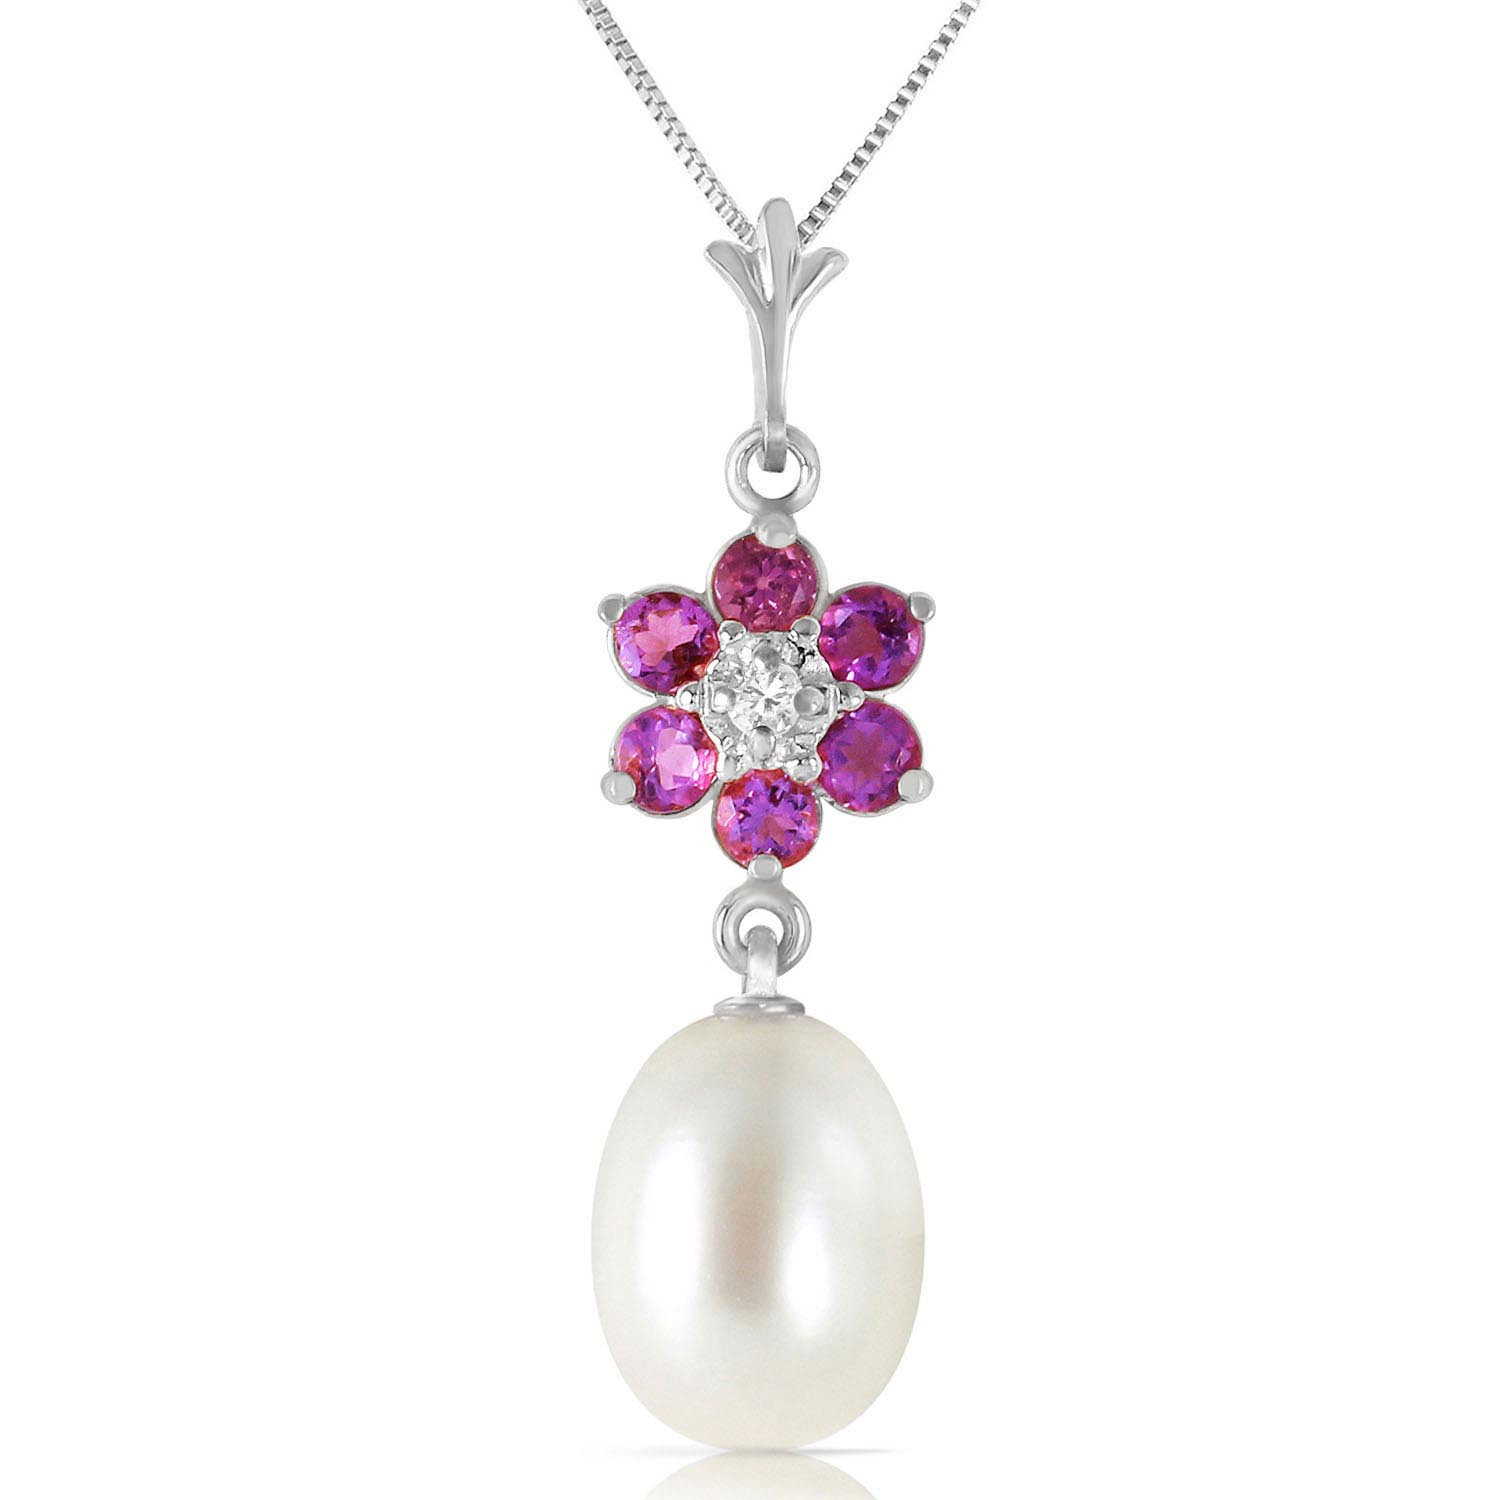 Pearl, Amethyst & Diamond Daisy Pendant Necklace in 9ct White Gold